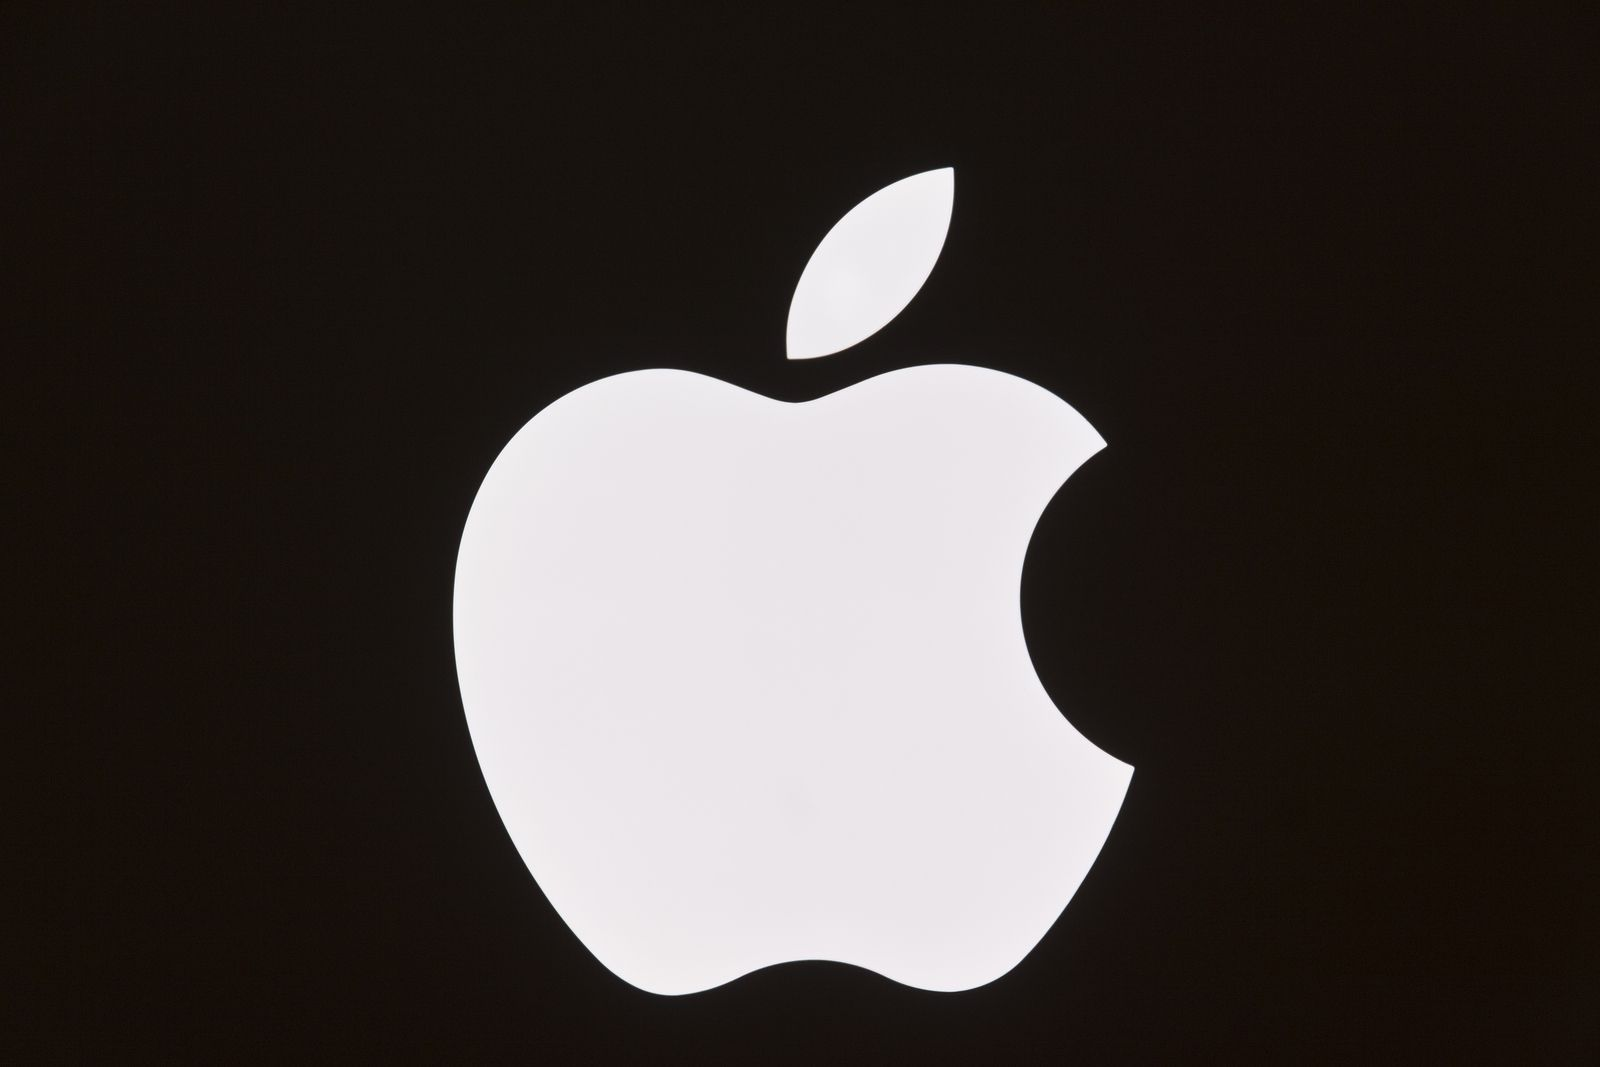 why did apple choose an apple with a bite out of it for its logo? - fynd